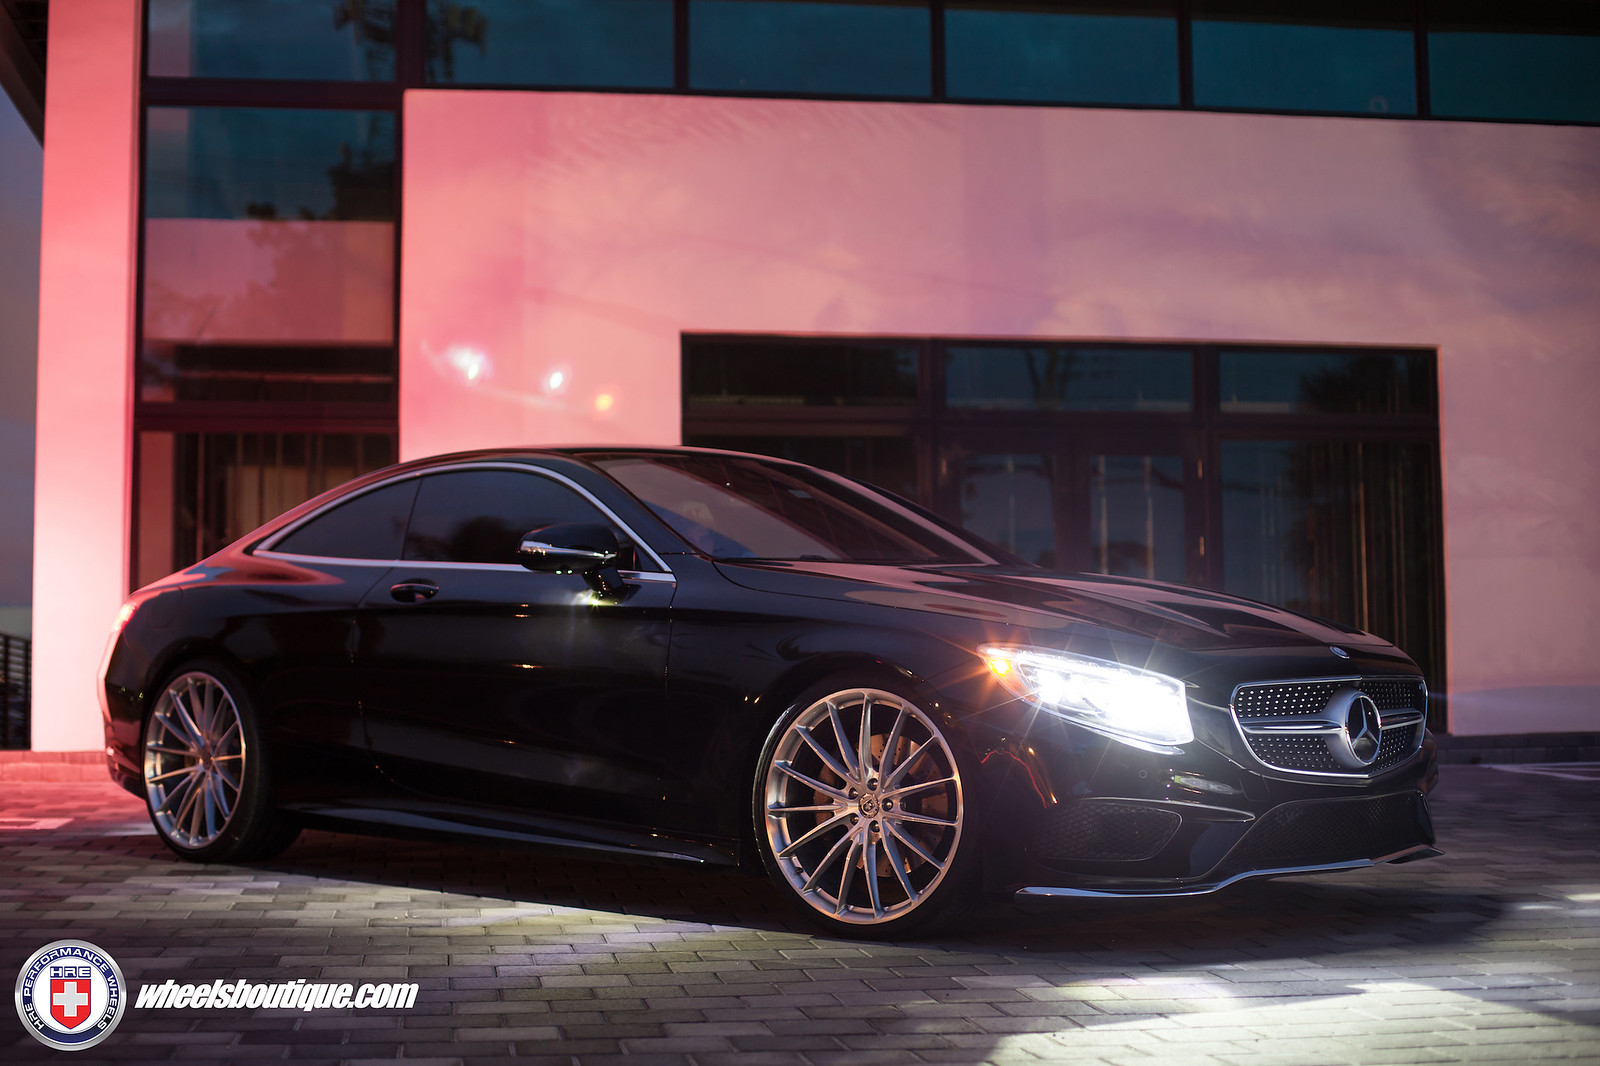 Mercedes benz s550 coupe on hre p103 39 s by wheels boutique for Mercedes benz s550 rims